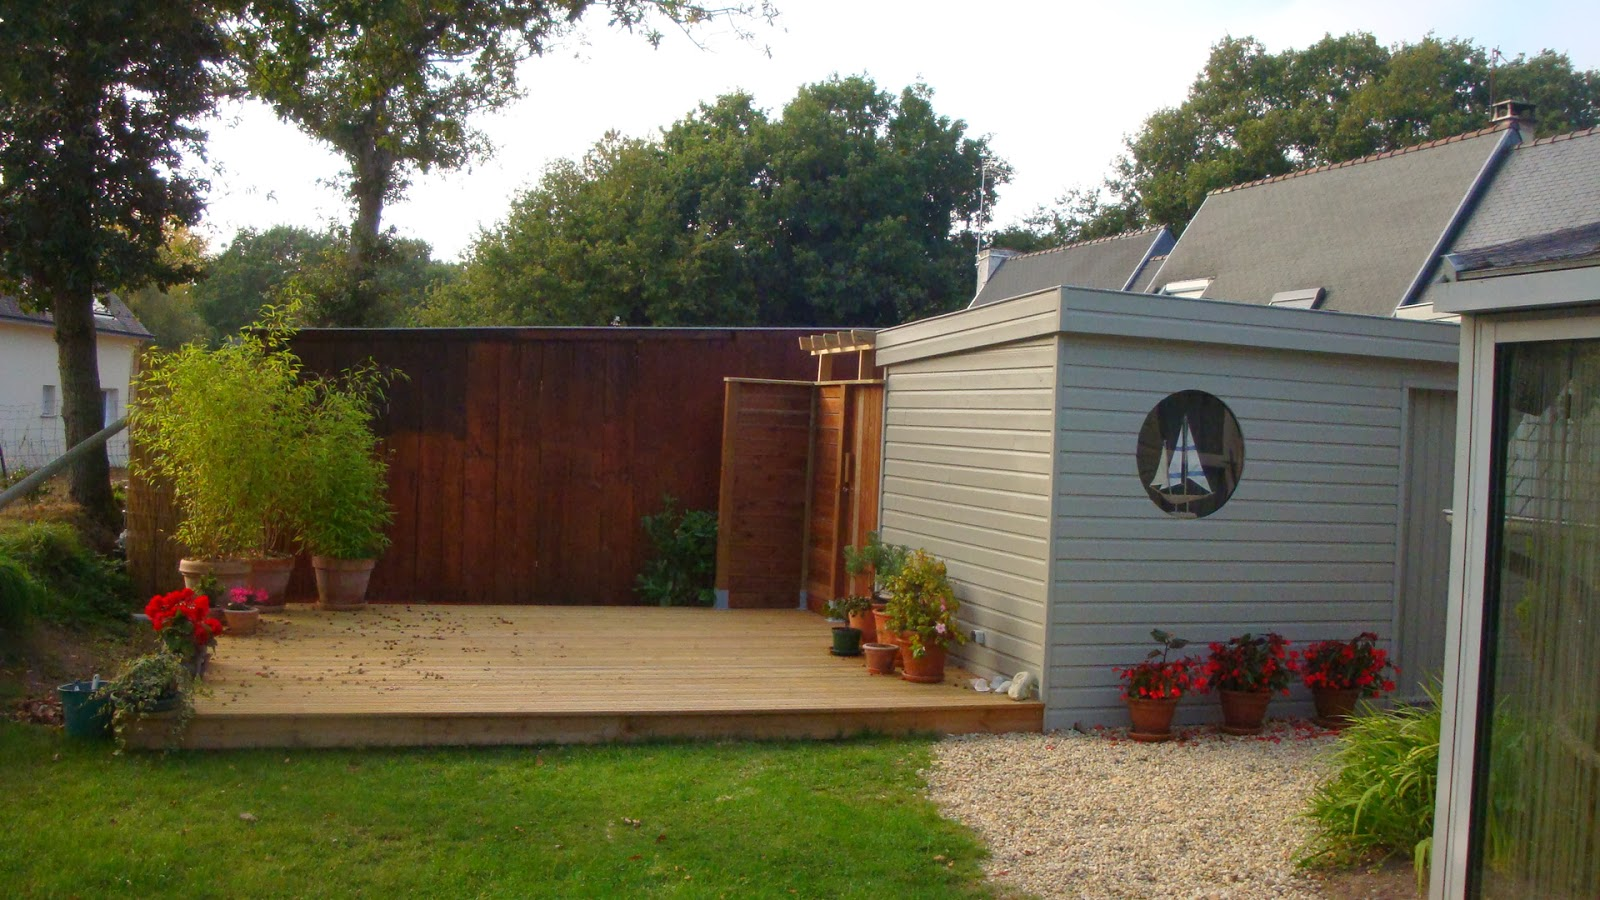 Michel le coz agencement d coration ext rieur car port for Amenagement jardin avec terrasse